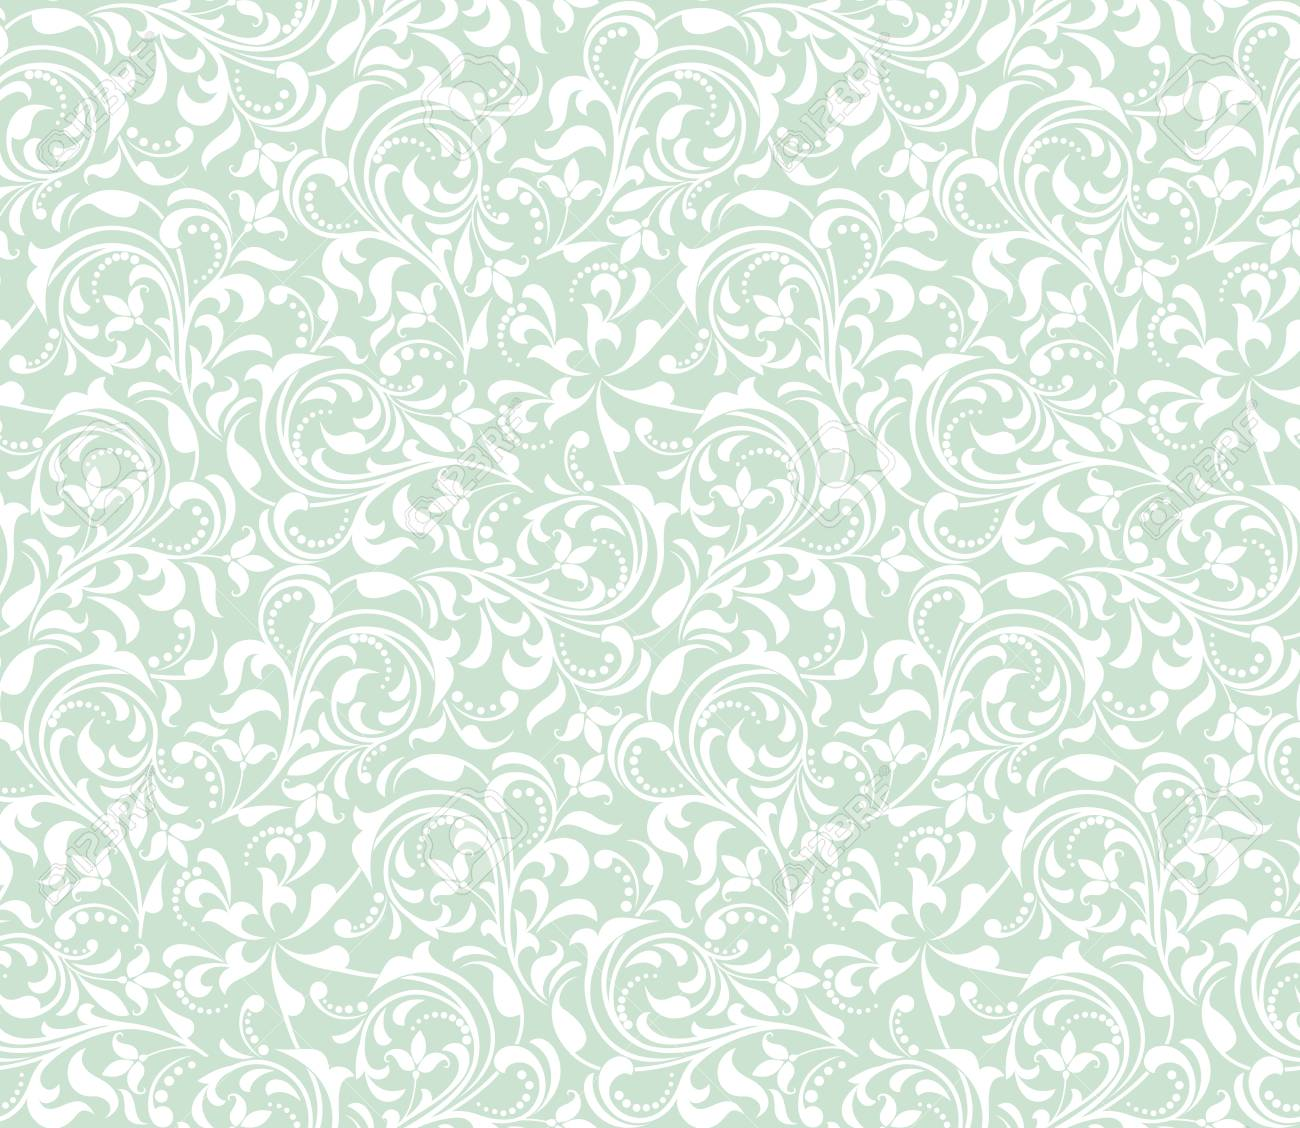 Floral Seamless Pattern Wallpaper Baroque Damask Vector Green And White Background Ornament Stock